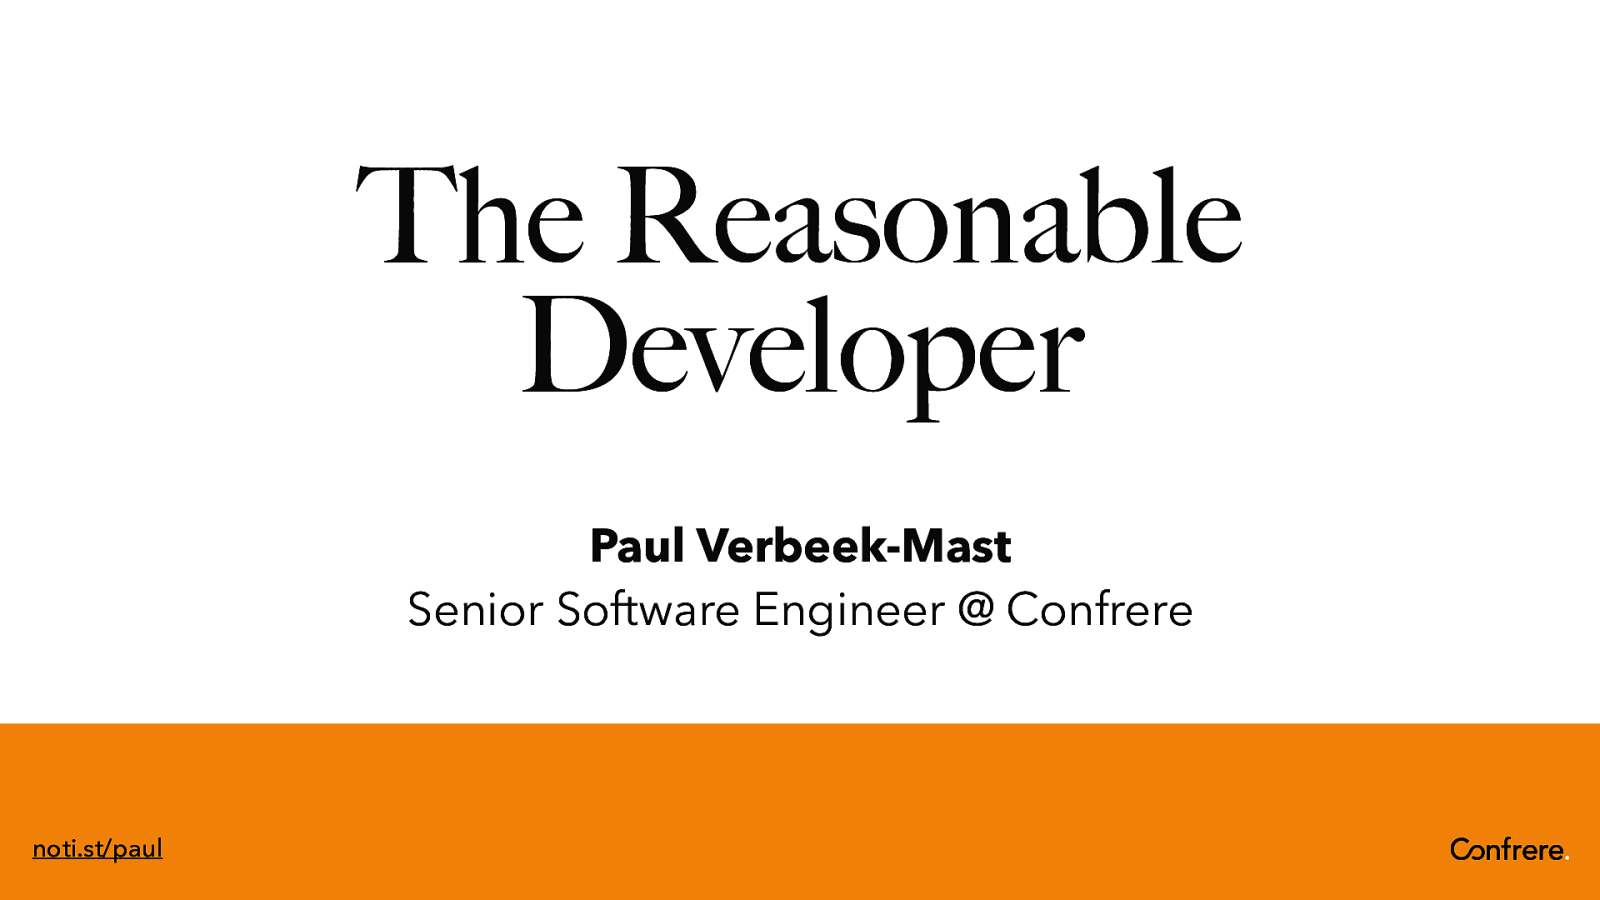 The Reasonable Developer